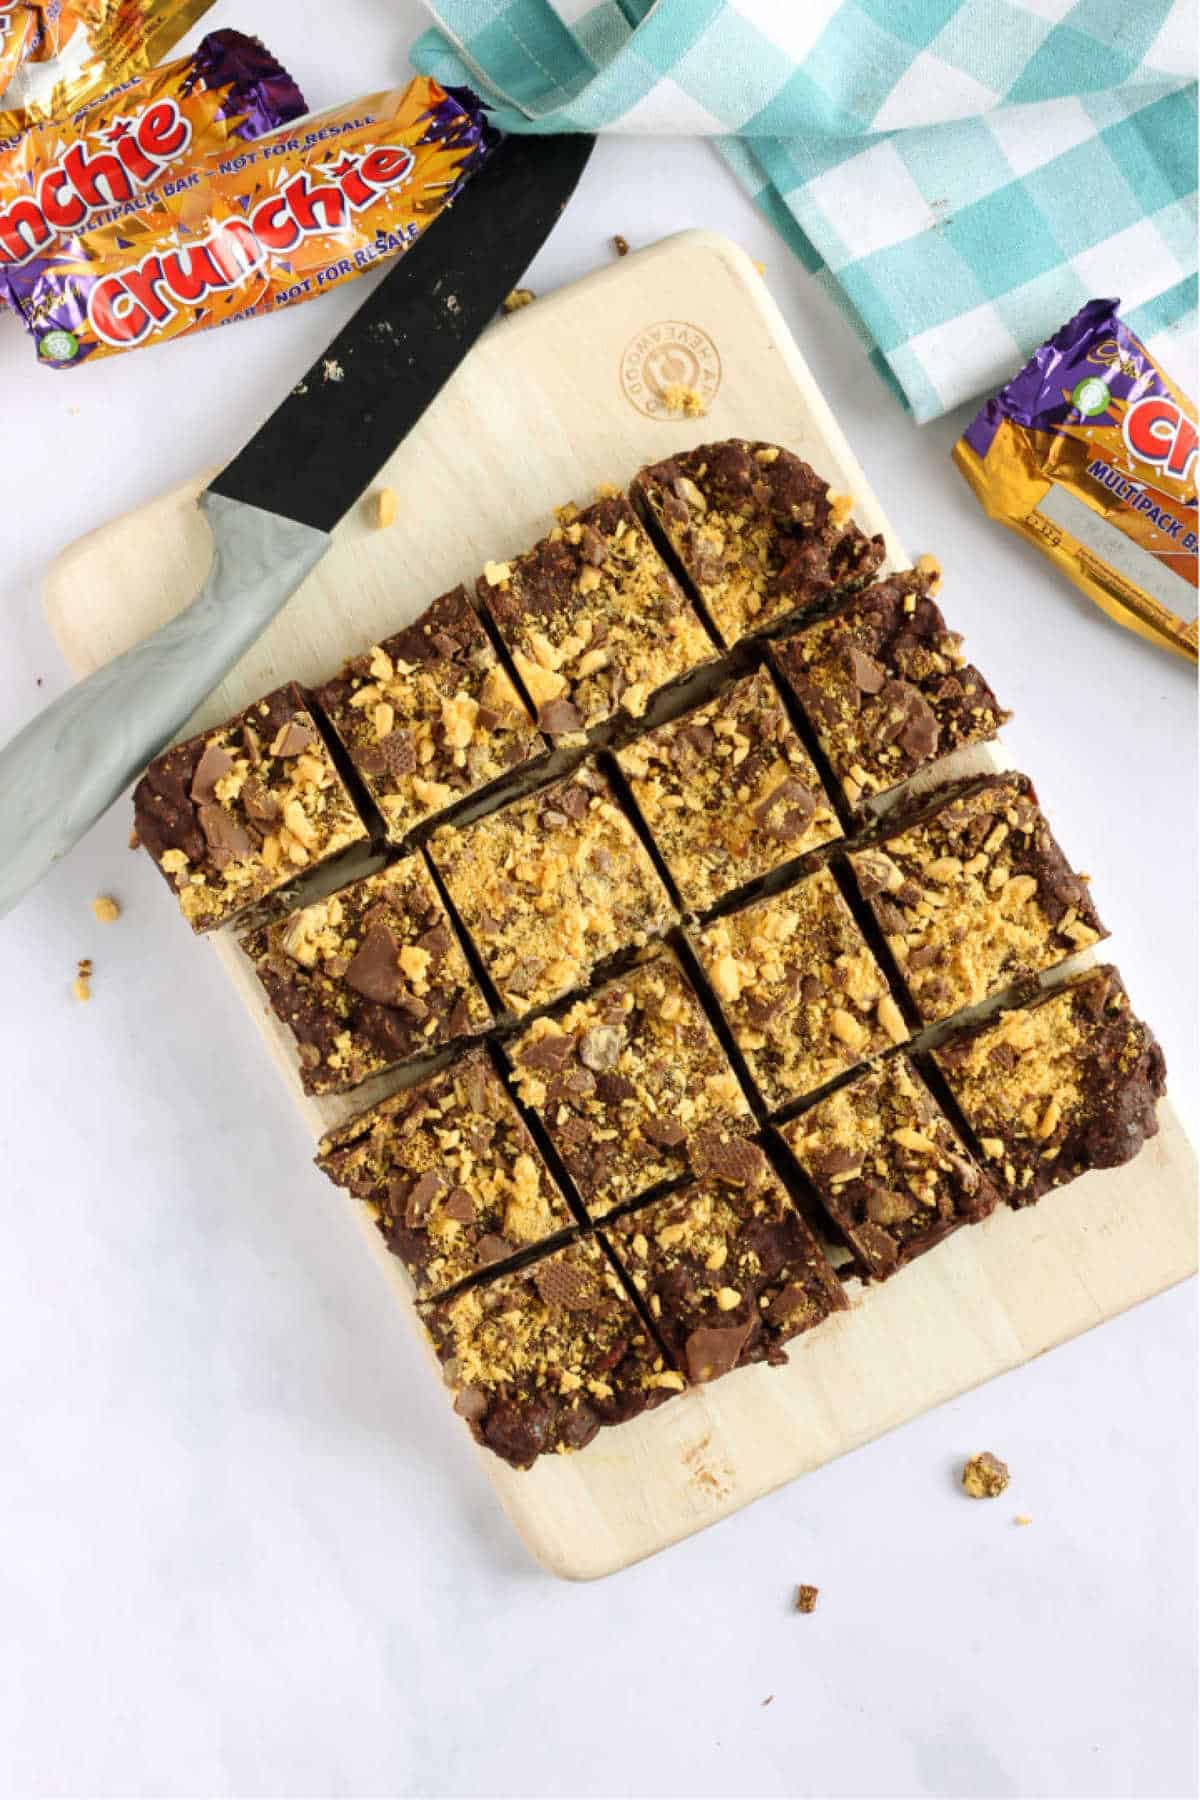 Overhead shot of chocolate crunchie tiffin, cut into squares with a grey knife.